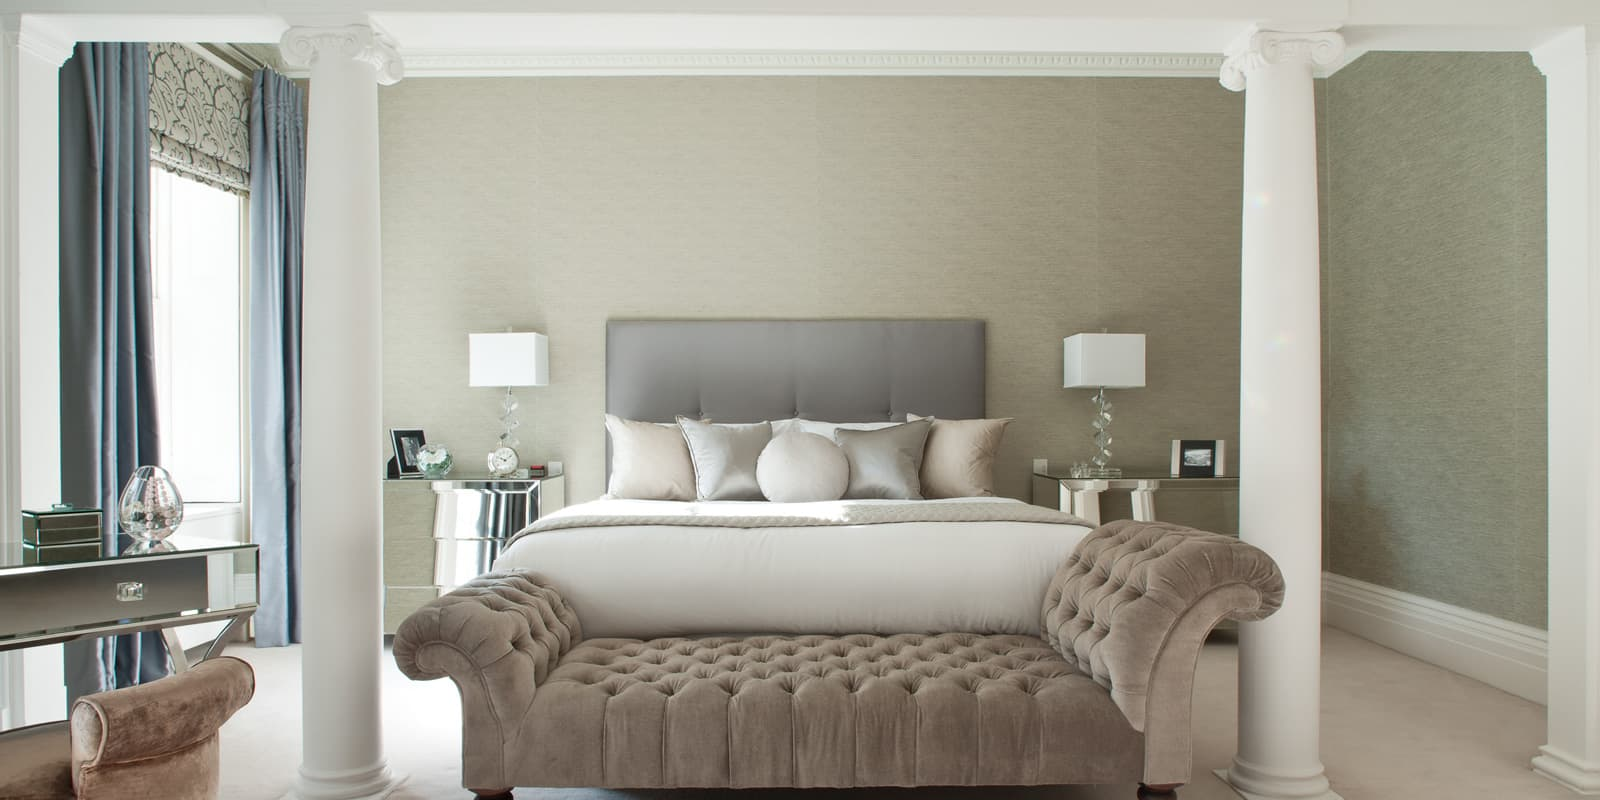 luxurious dream bedroom in green and grey colour palette with velvet chaise lounge positioned between white pillars